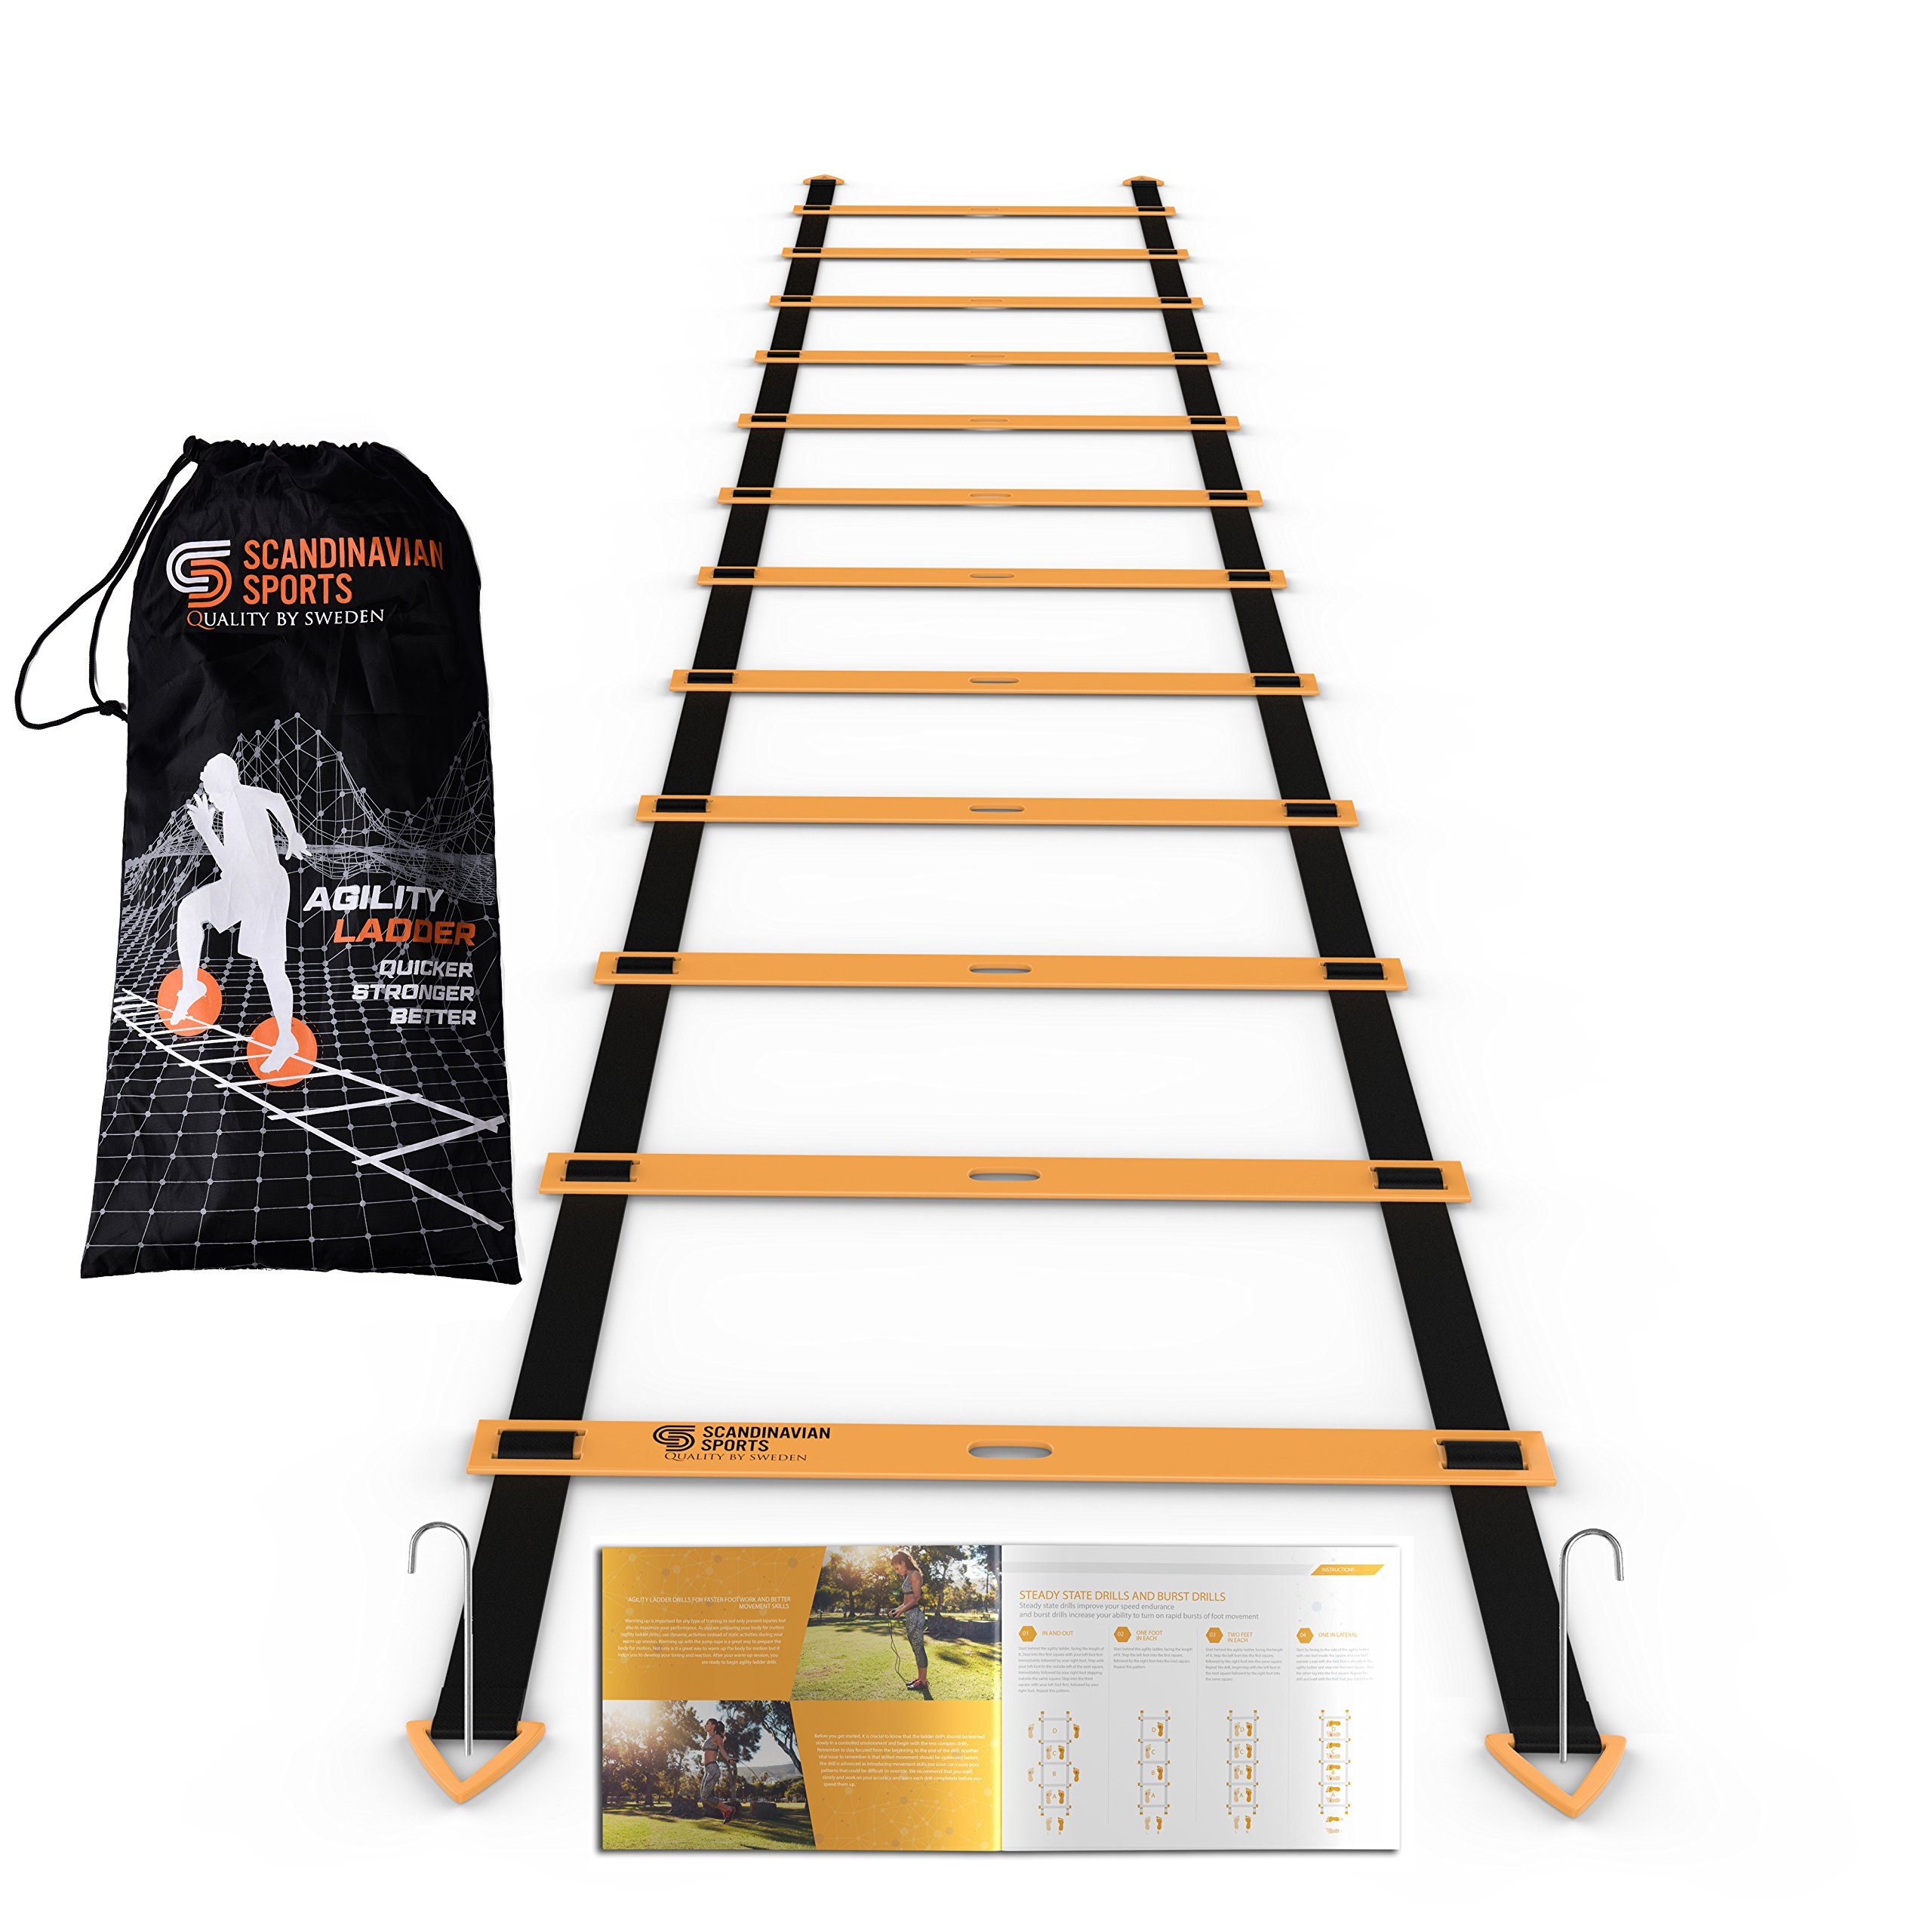 Scandinavian Sports Agility Ladder – 12 Adjustable Rungs 20 Feet – Agility & Speed Training Kit – Quickness Training Equipment for Faster Footwork and Better Movement Skills